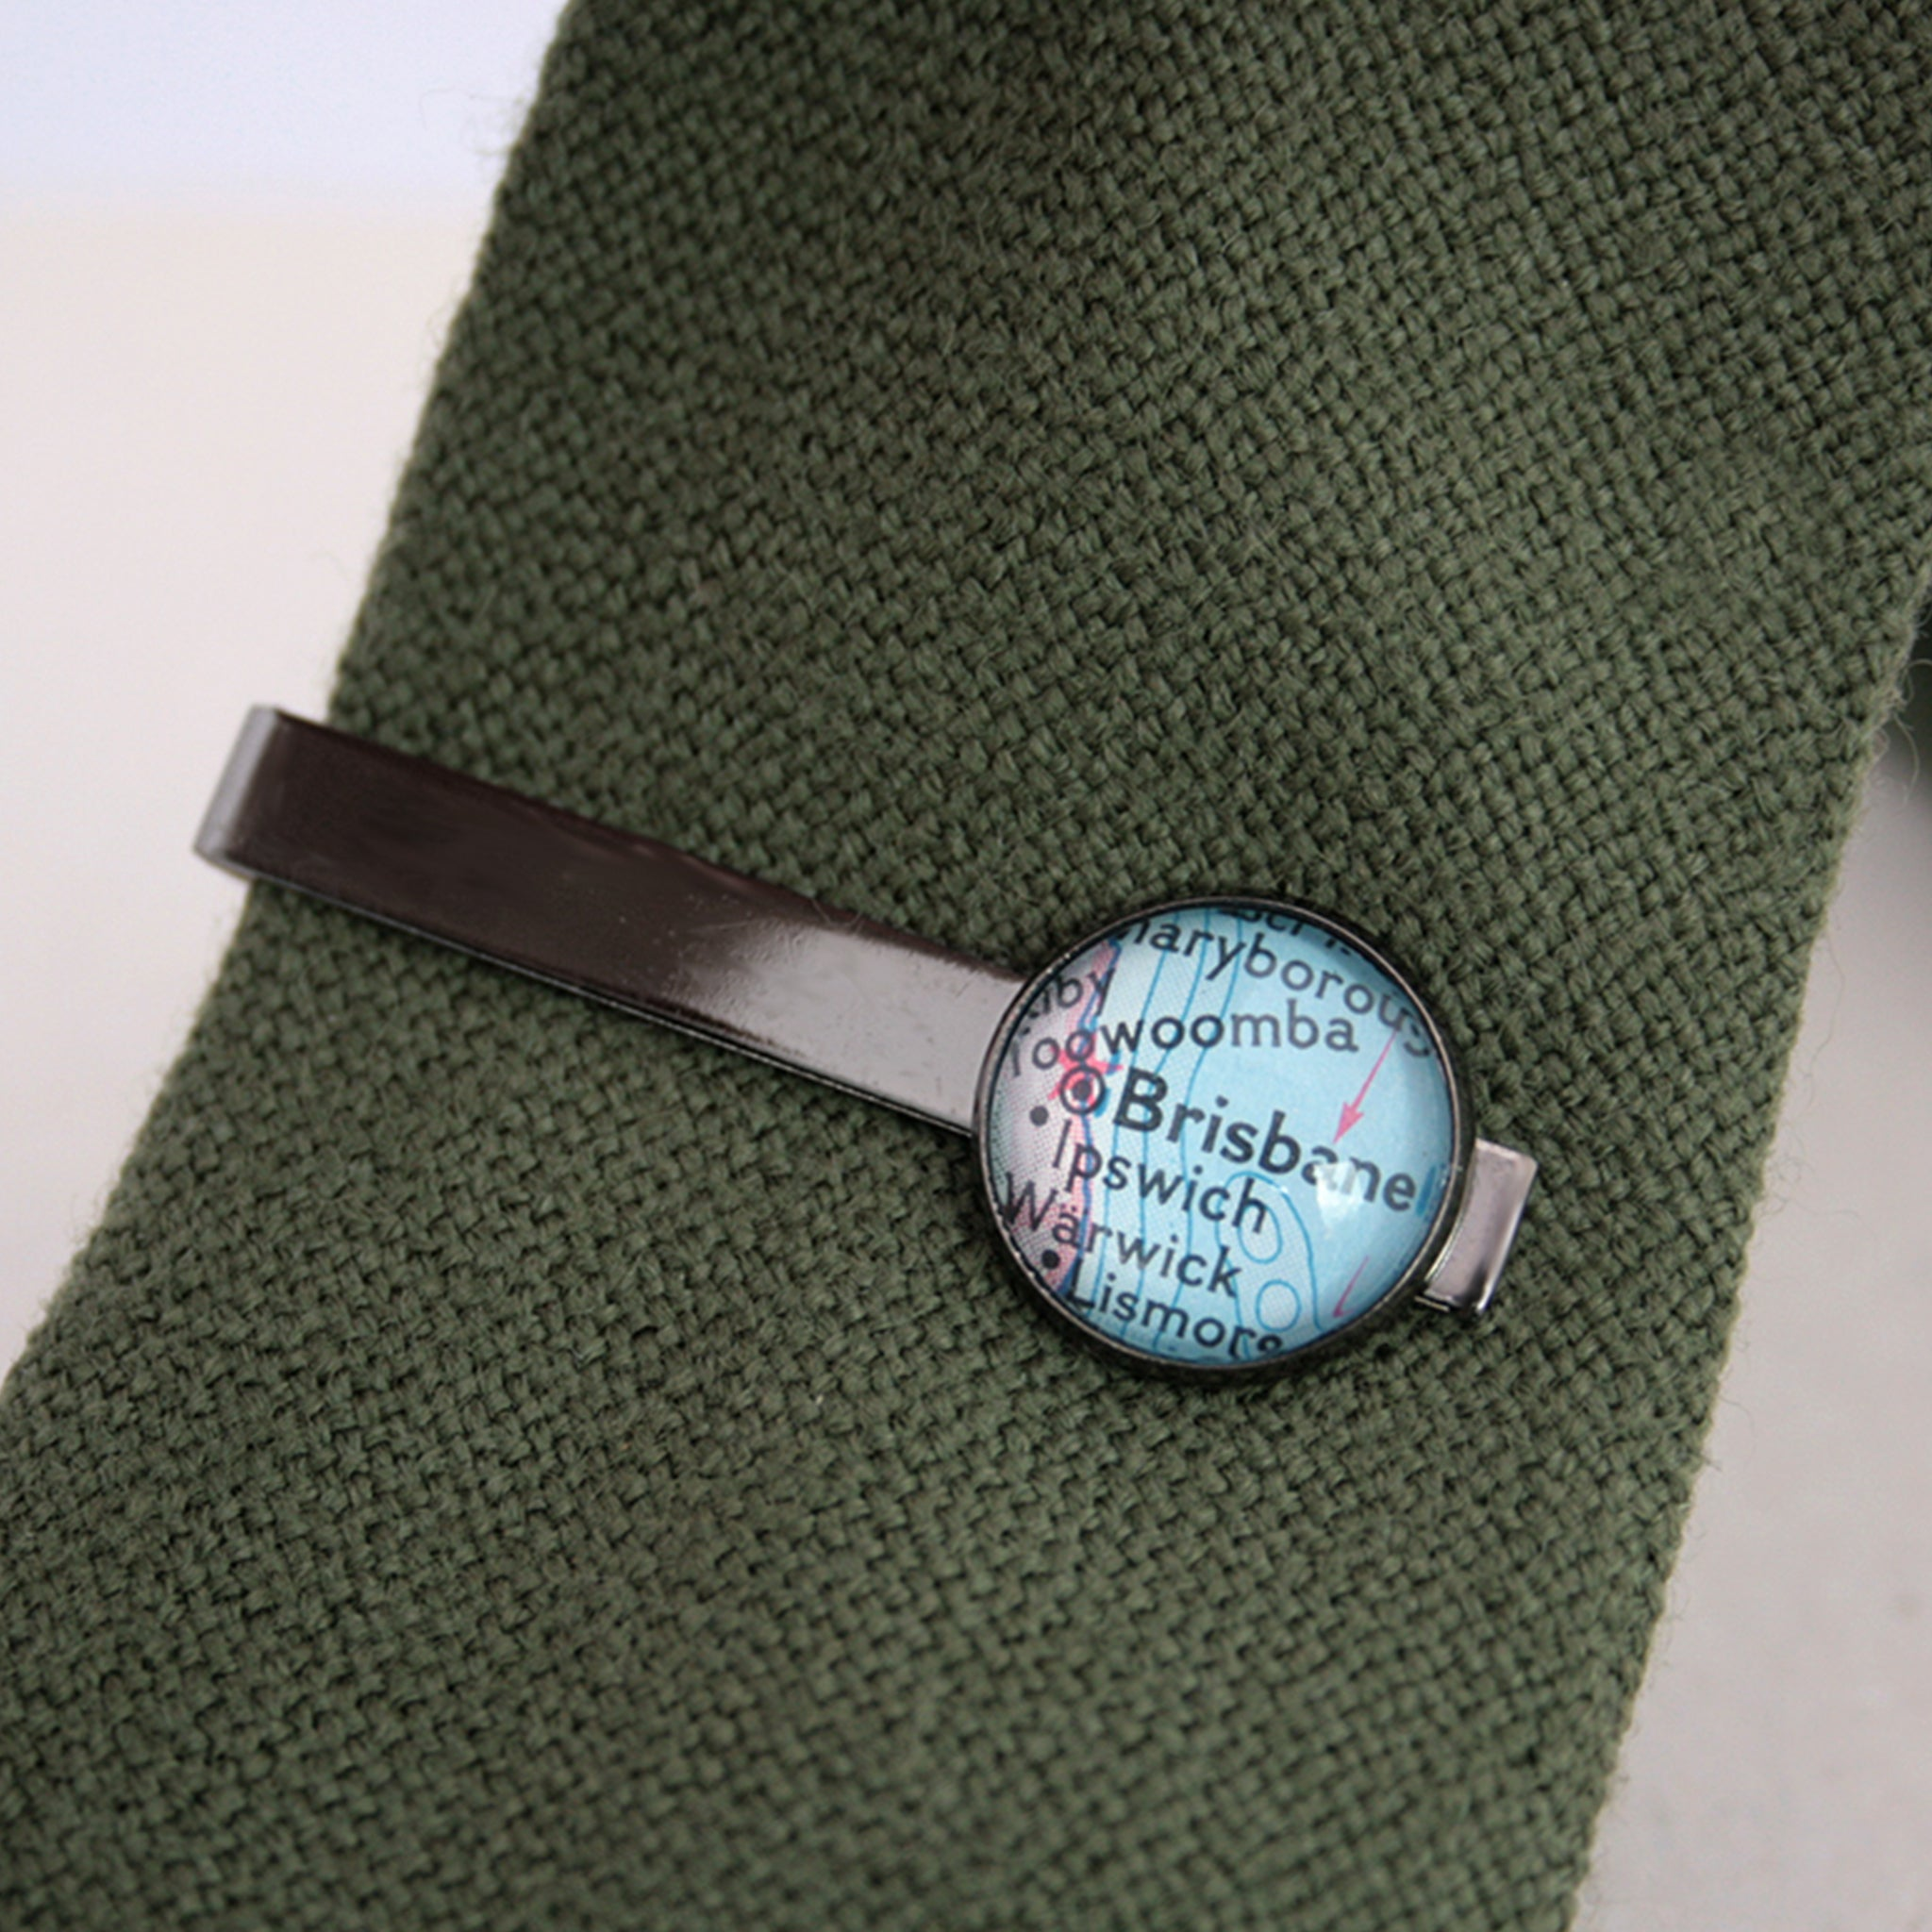 Tie clip in gunmetal black color featuring map of Brisbane on a green tie